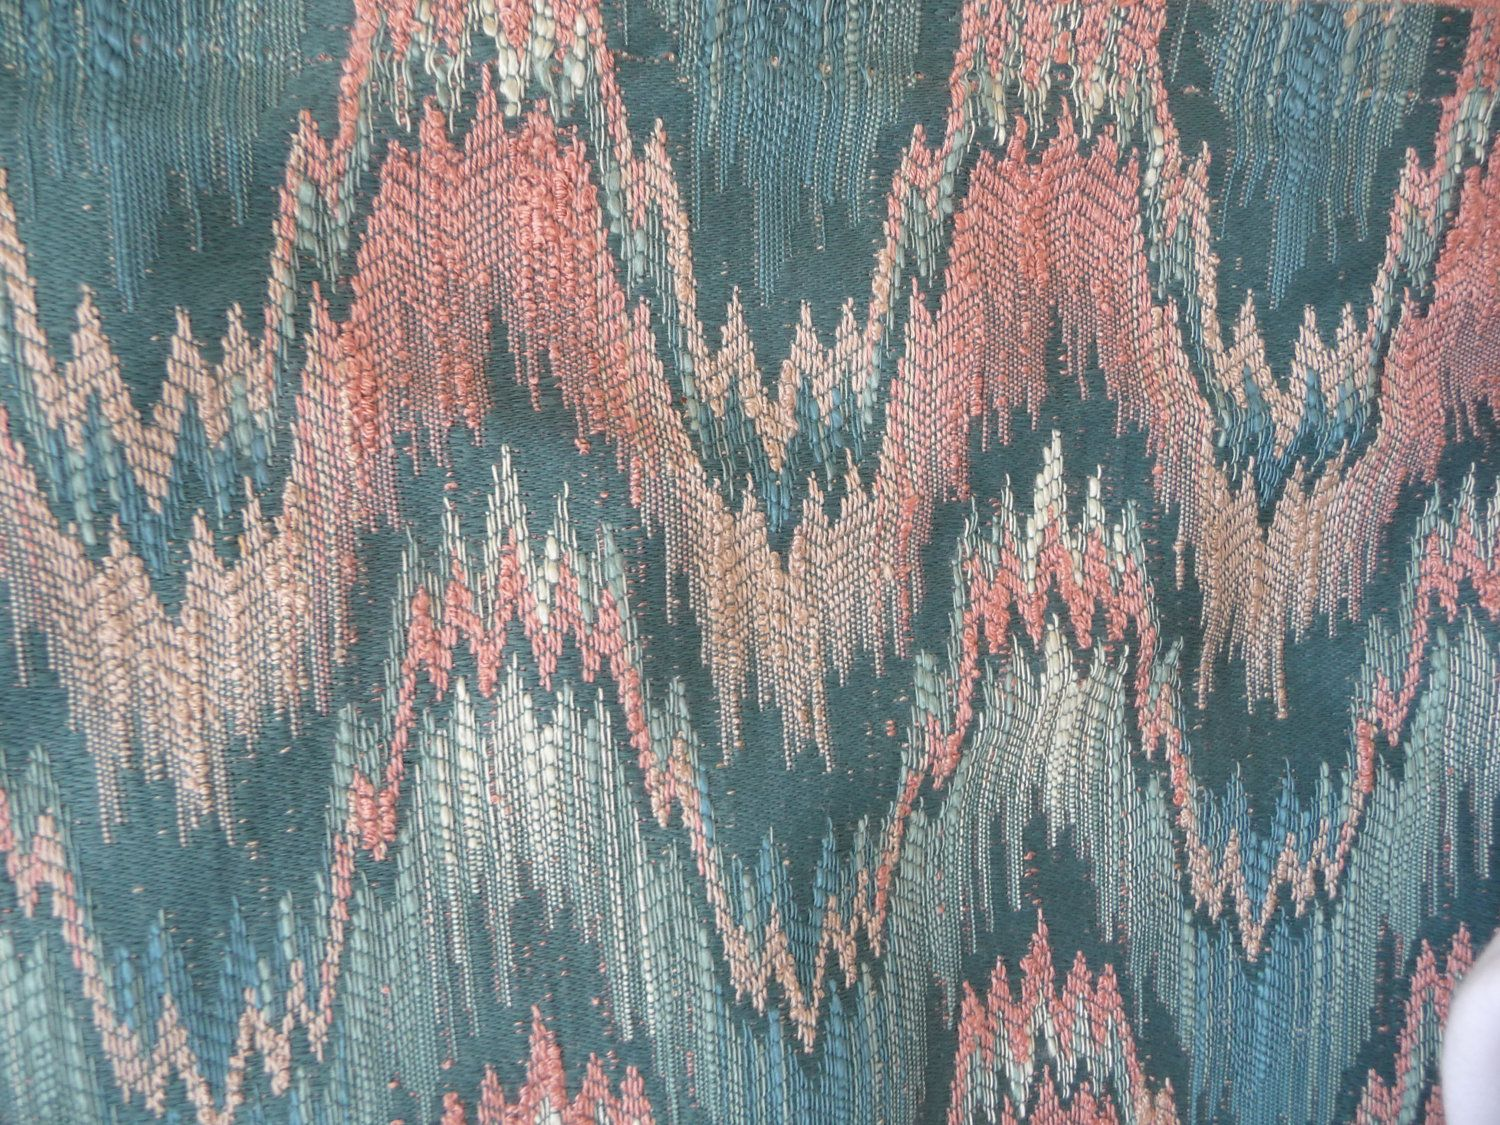 Missoni Like Fabric Flame Stitch Ikat Zig Zag Pink Teal Upholstery